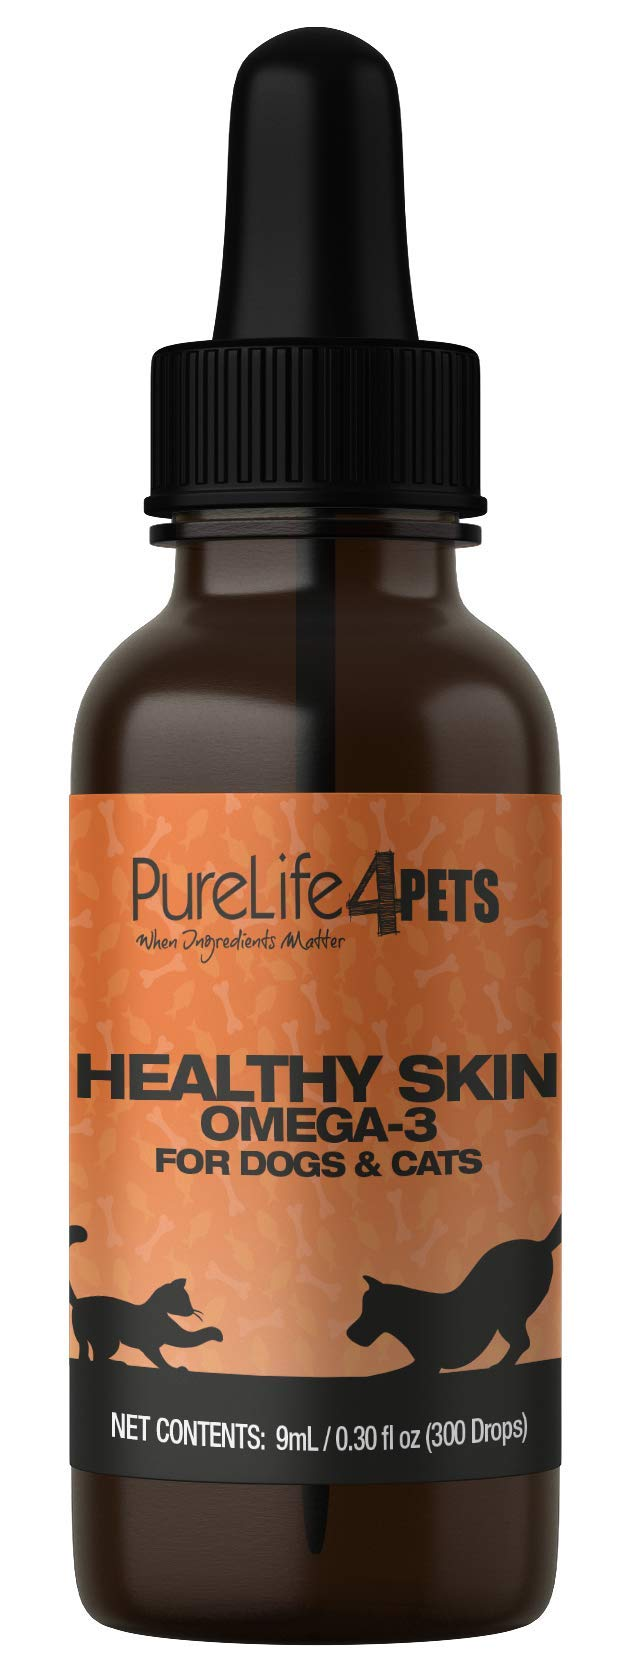 PureLife 4 Pets Healthy Skin Omega-3 for Dogs and Cats by PureLife 4PETS